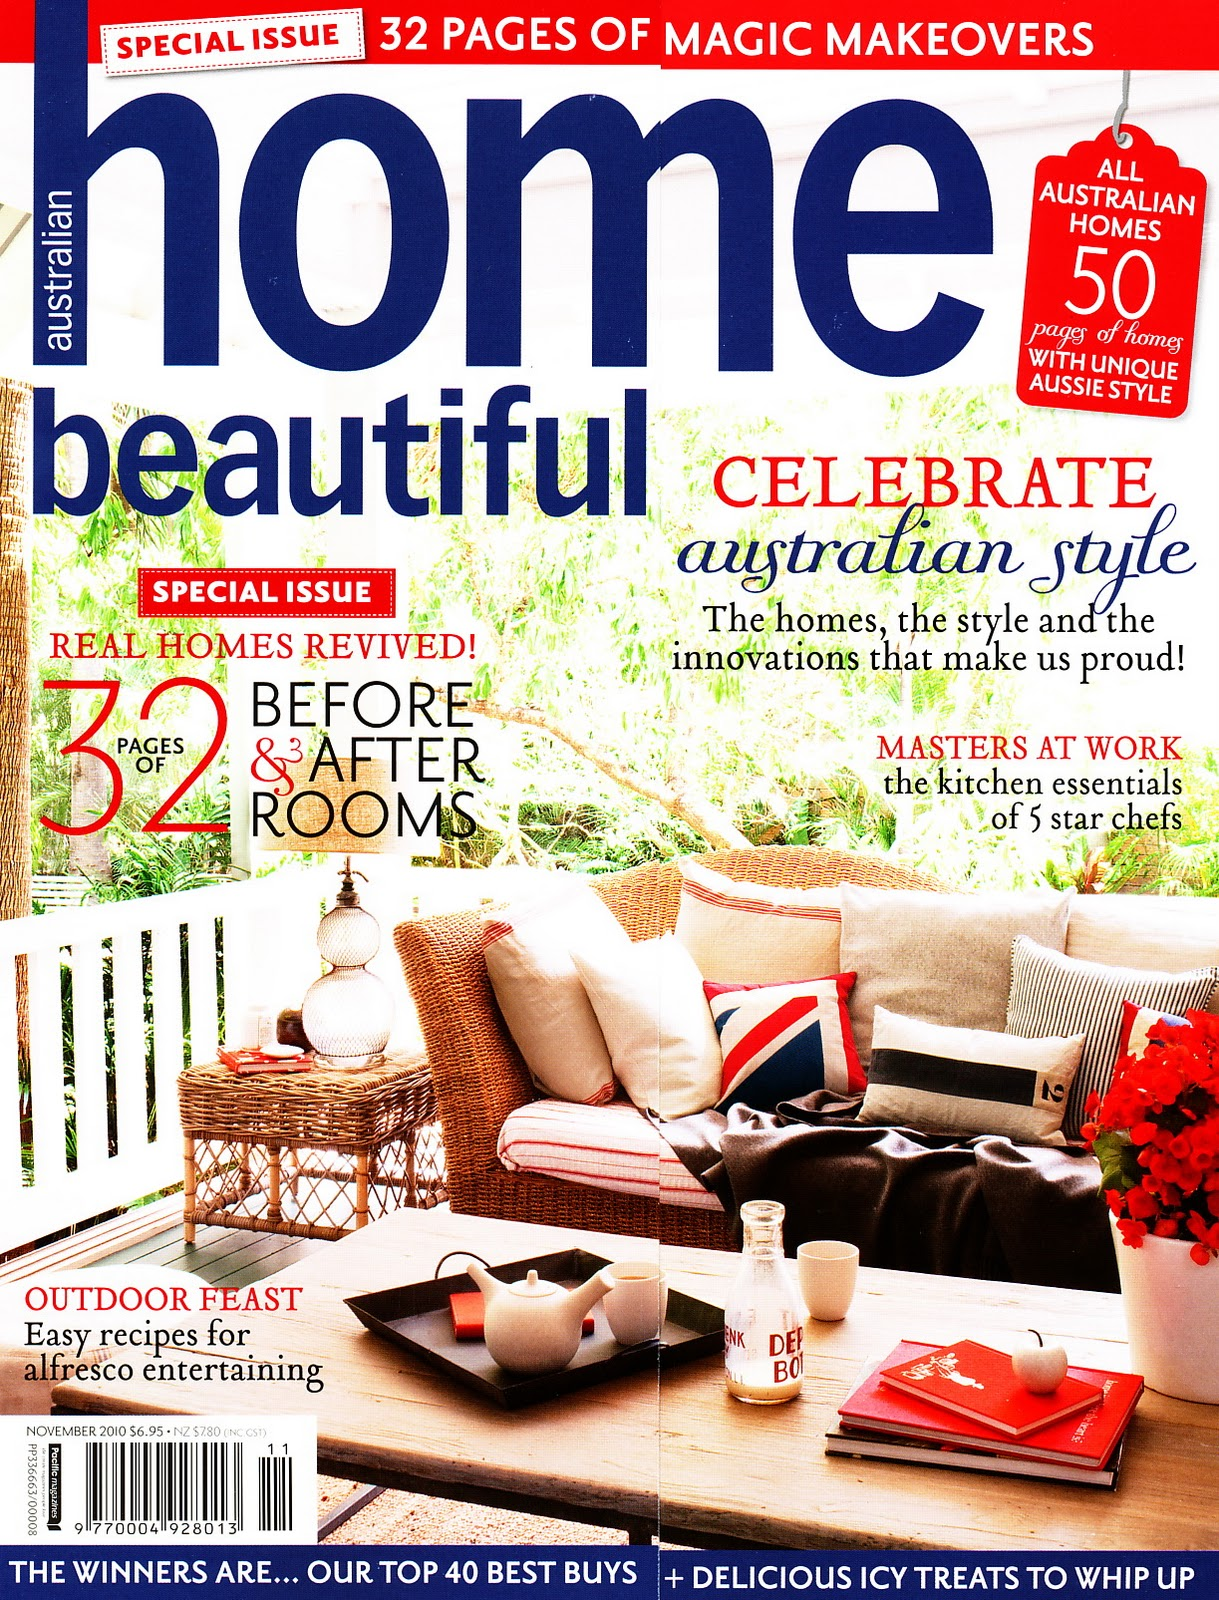 There are a myriad of decorating ideas for your home in House Beautiful magazine. There are tips from designers, makeovers, organizing ideas, cleaning tips, and color scheme ideas that you will love in each issue of your subscription.